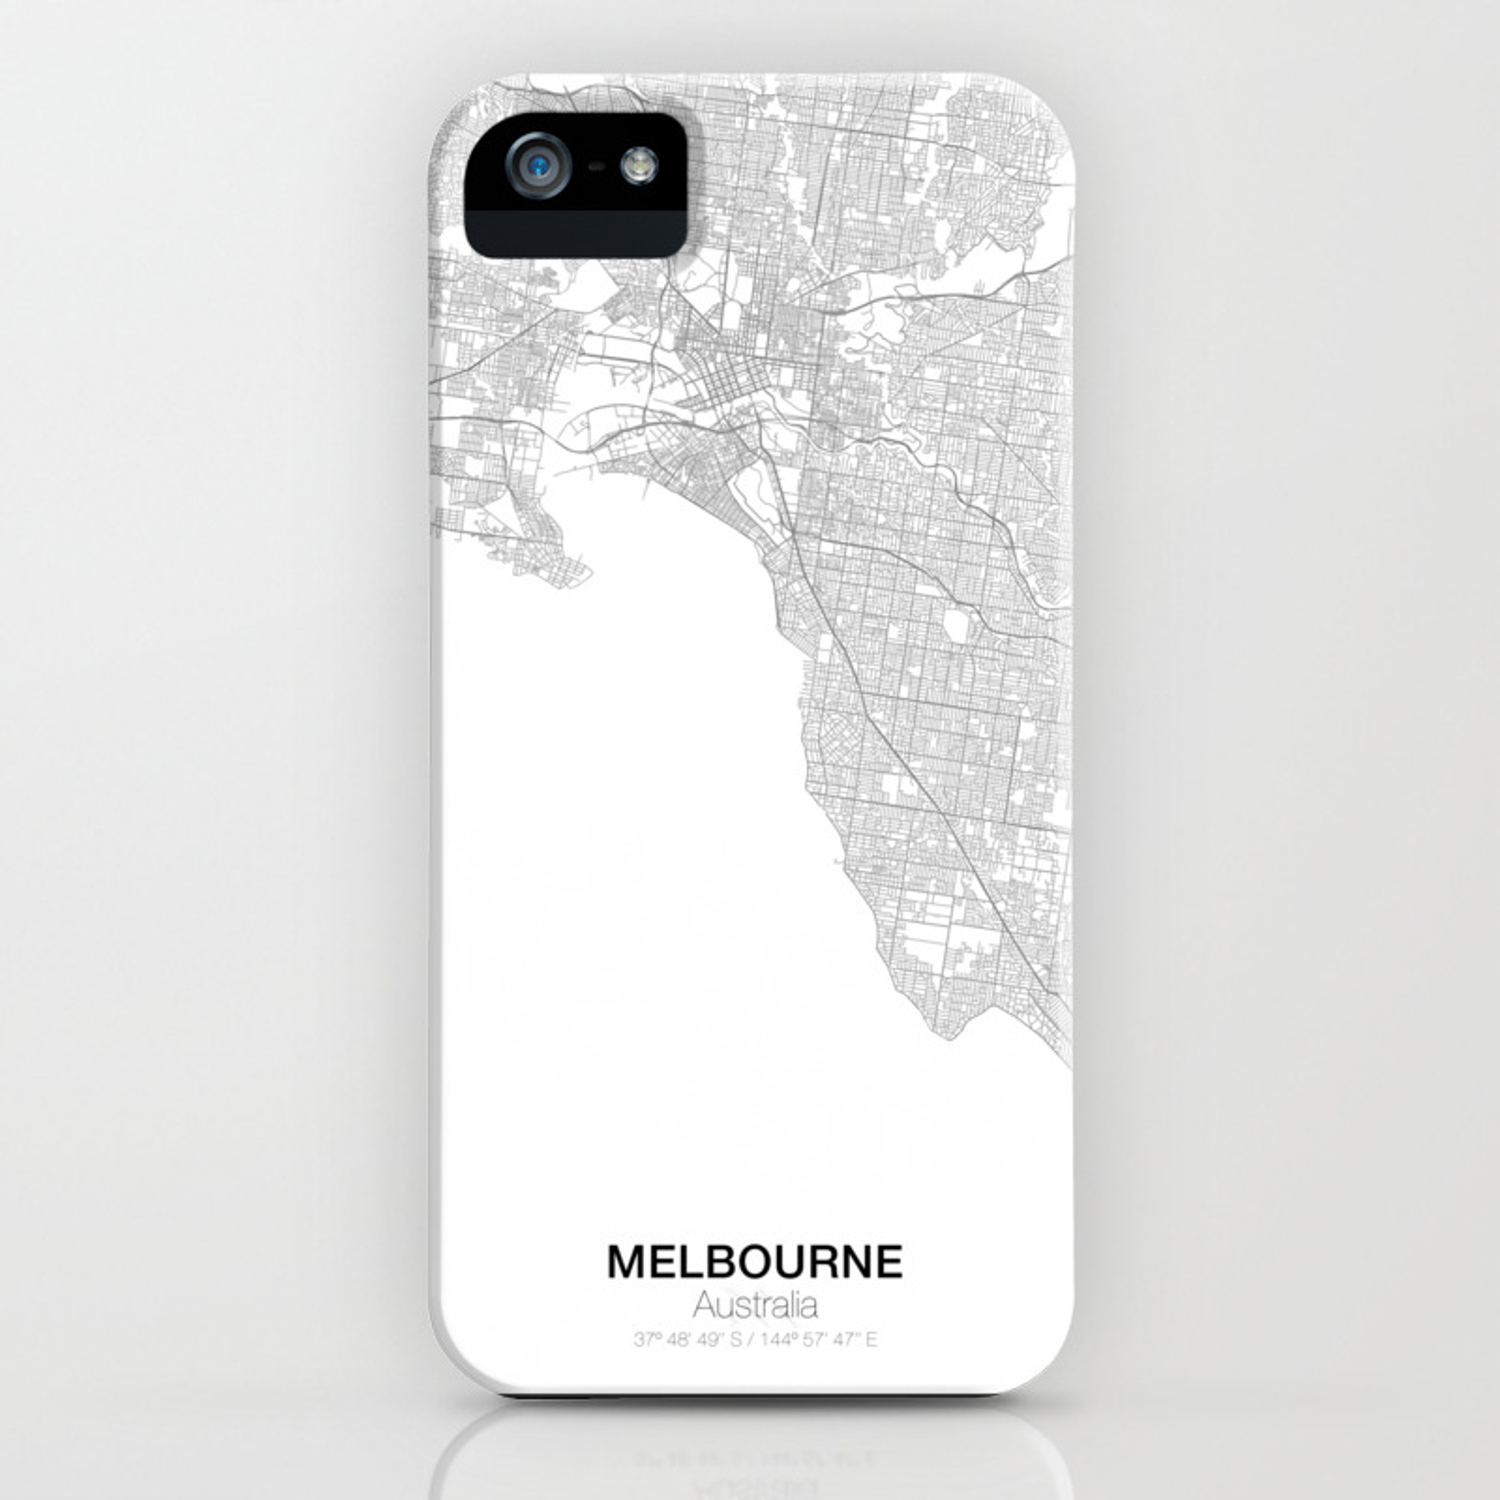 c002159b86 Melbourne, Australia Minimalist Map iPhone Case by resfeber | Society6